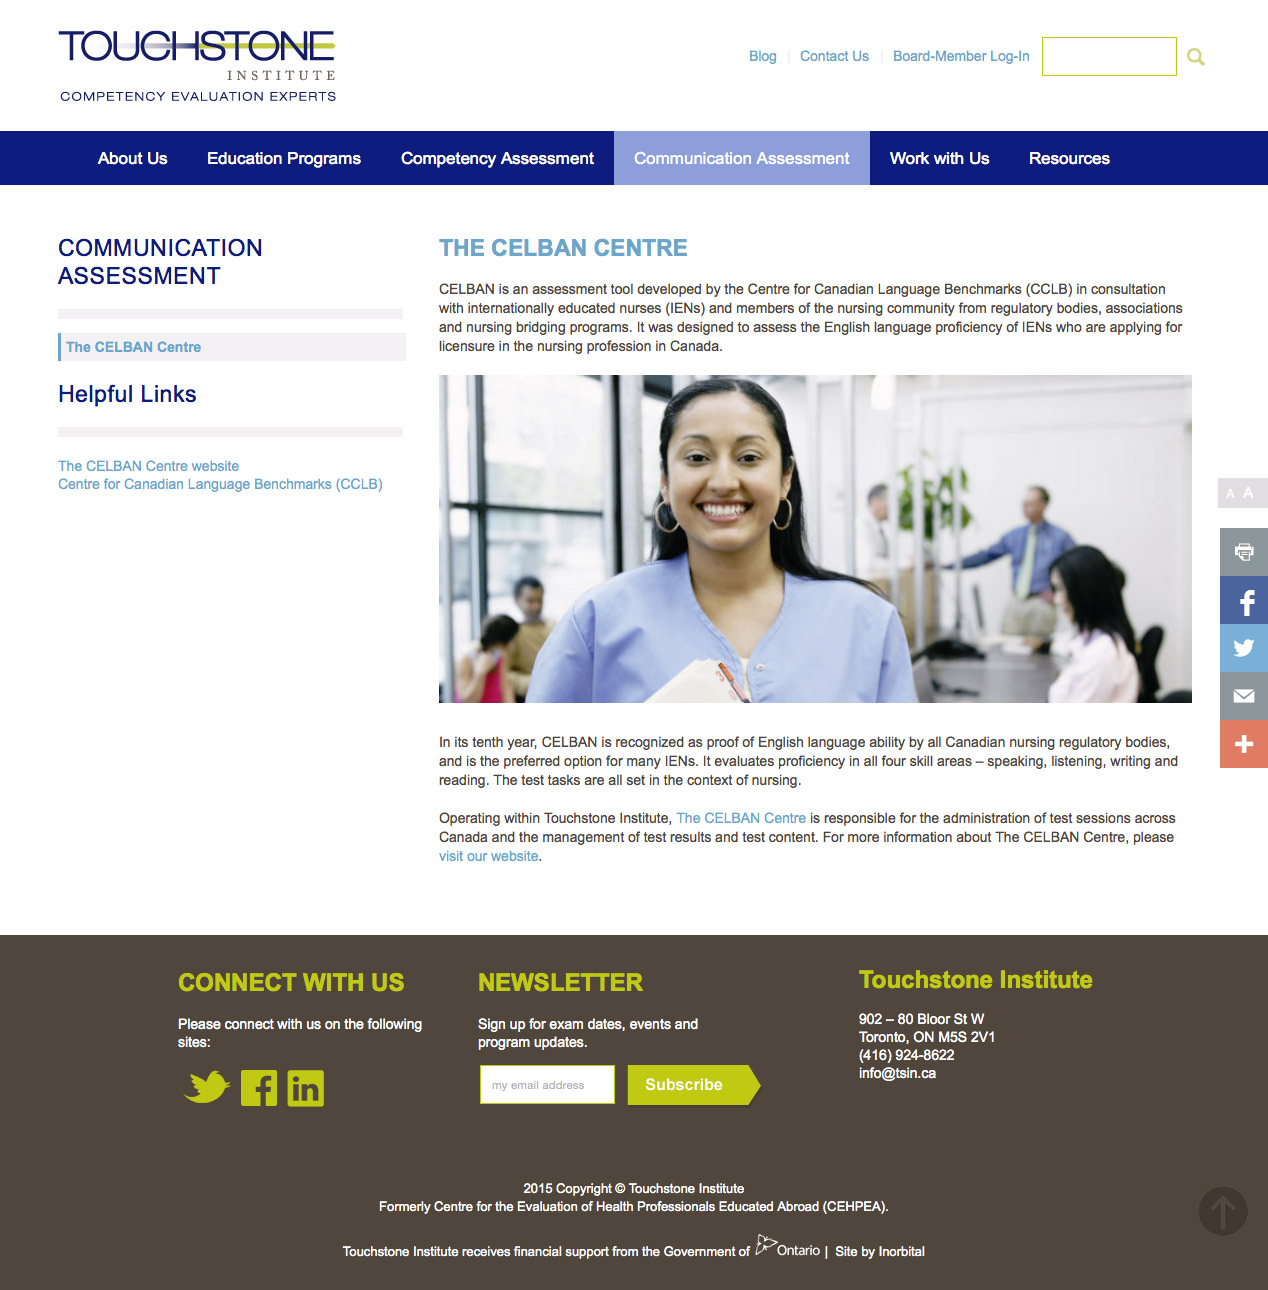 Touchstone Institute sub page design